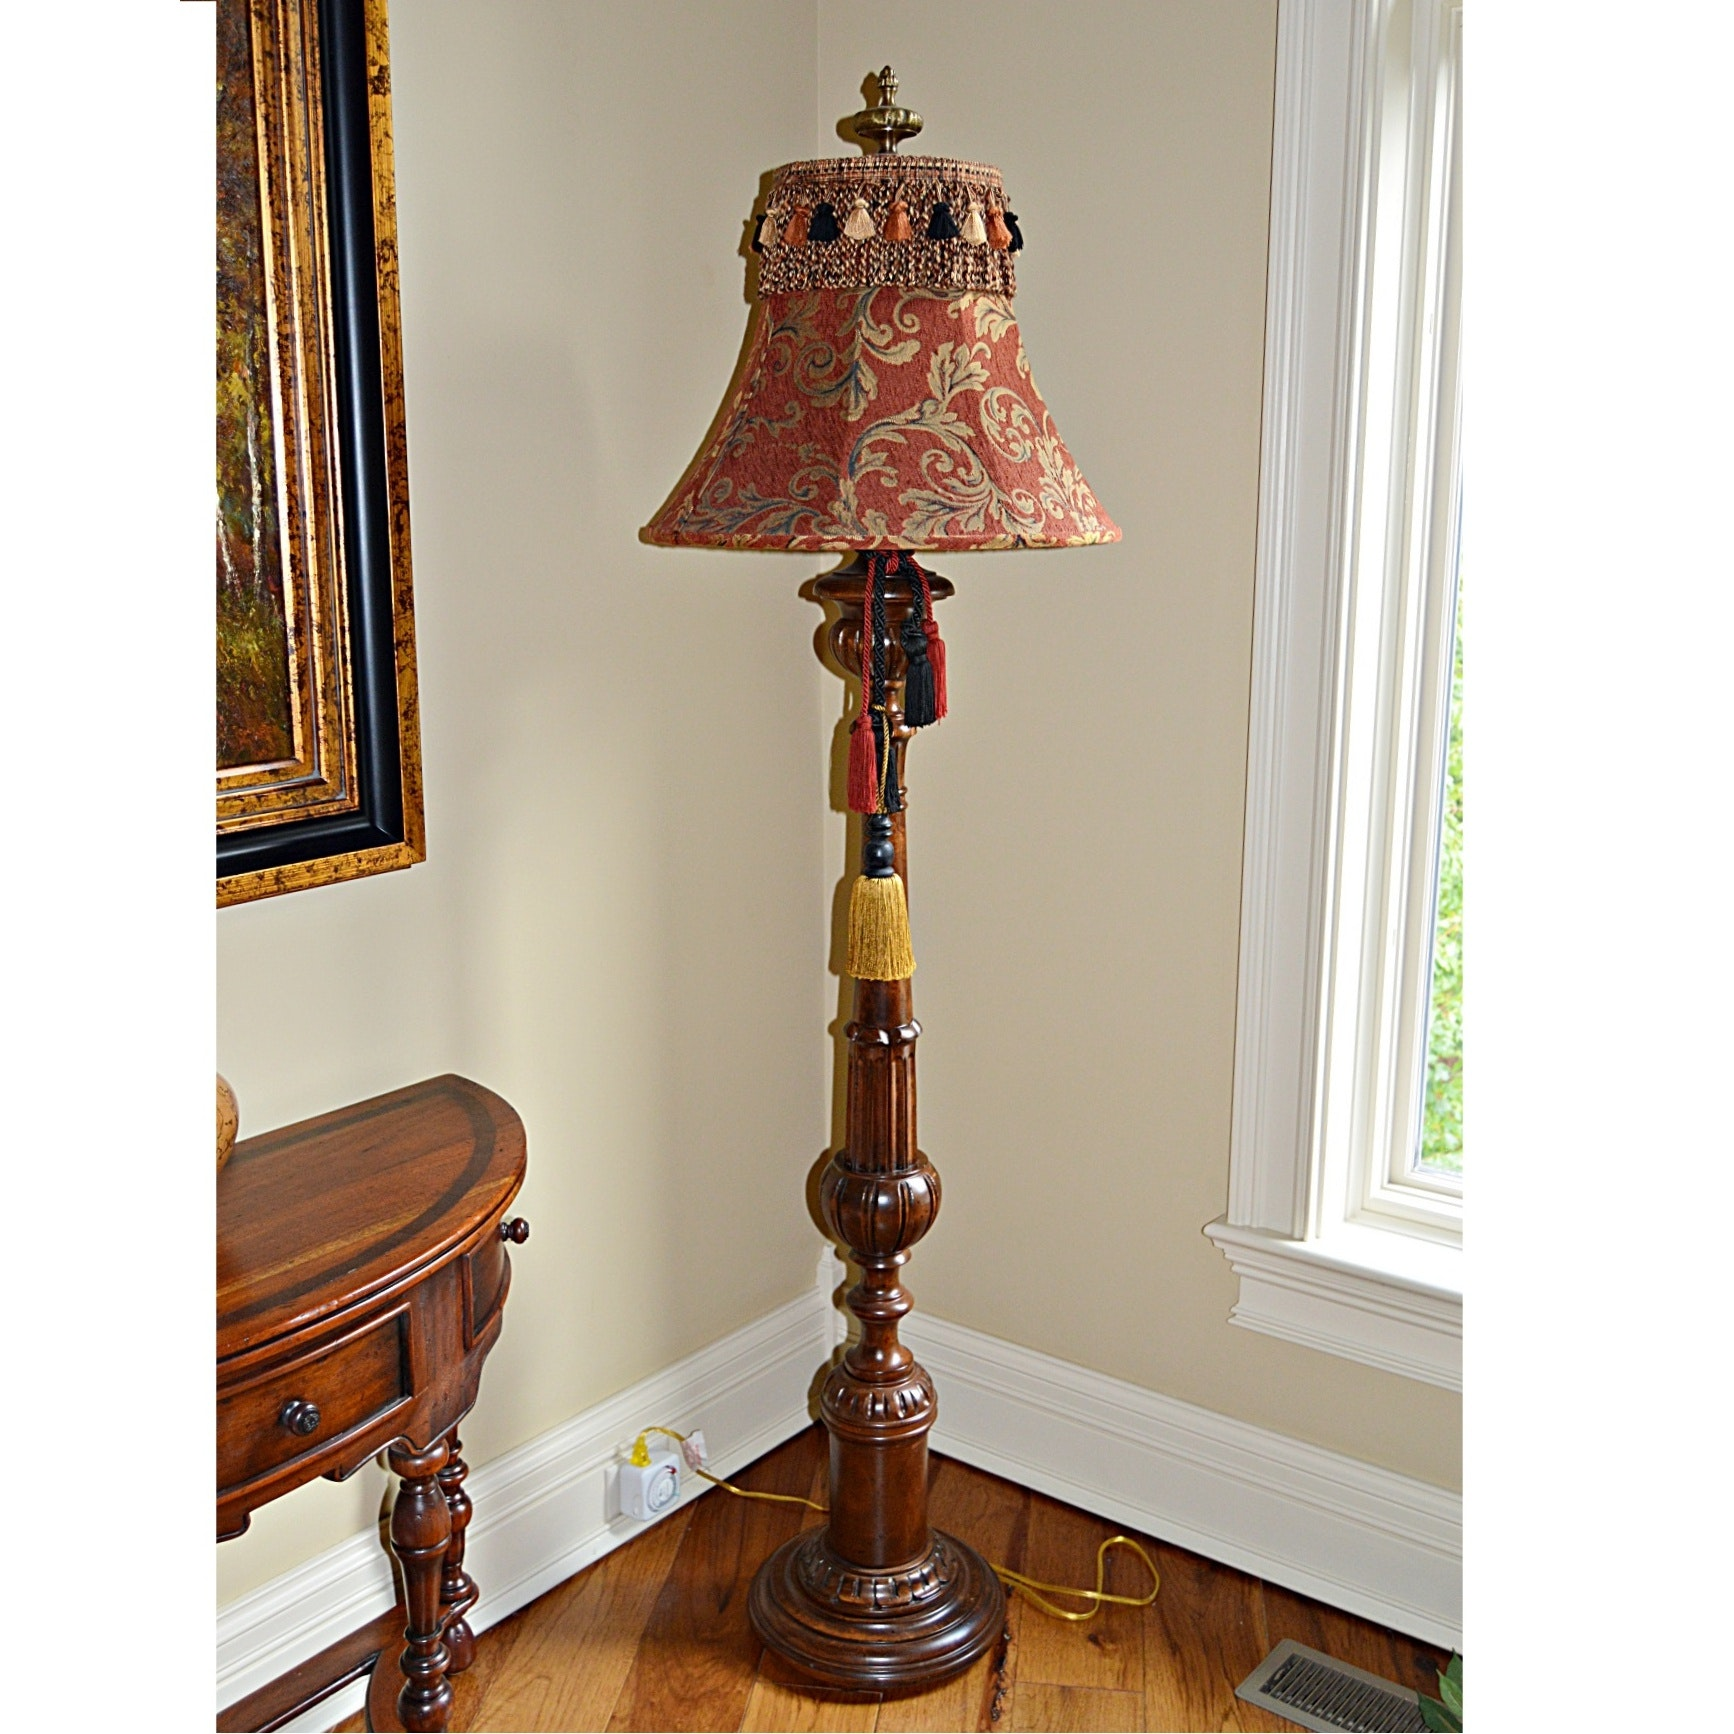 Wooden Floor Lamp with Tapestry Shade